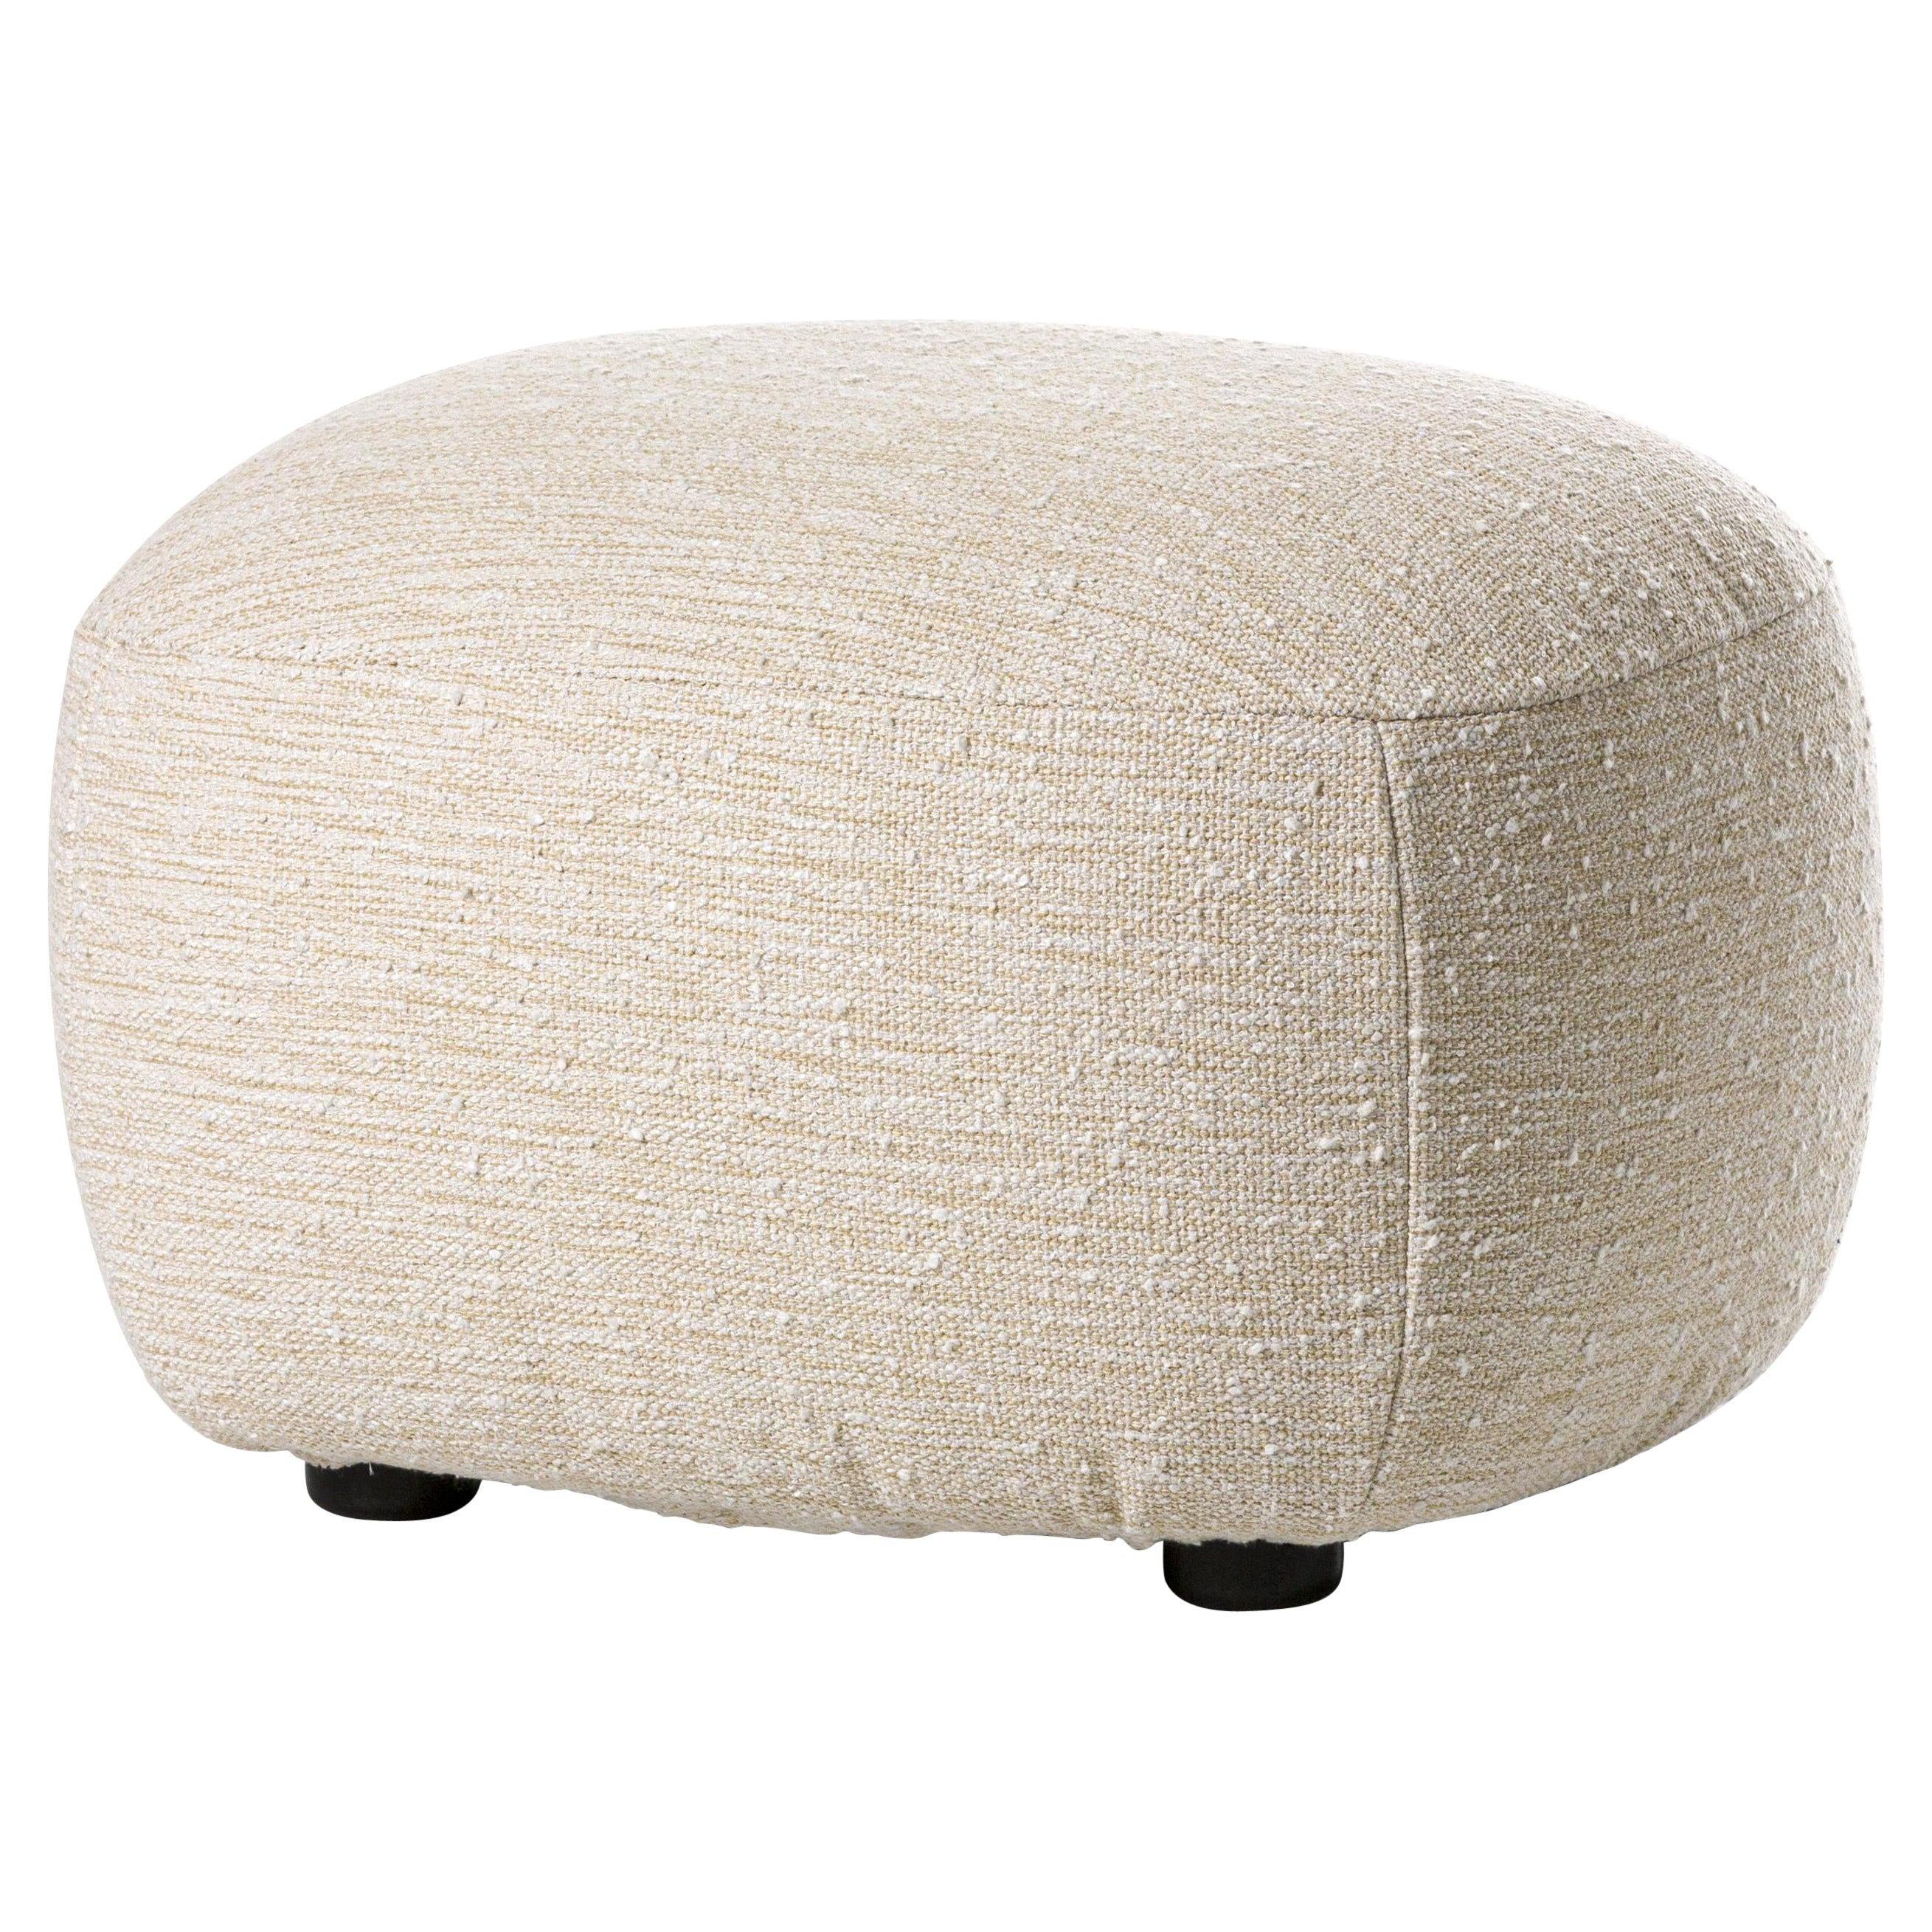 Gervasoni Loll 08 Ottoman in Seagull Upholstery by Paola Navone